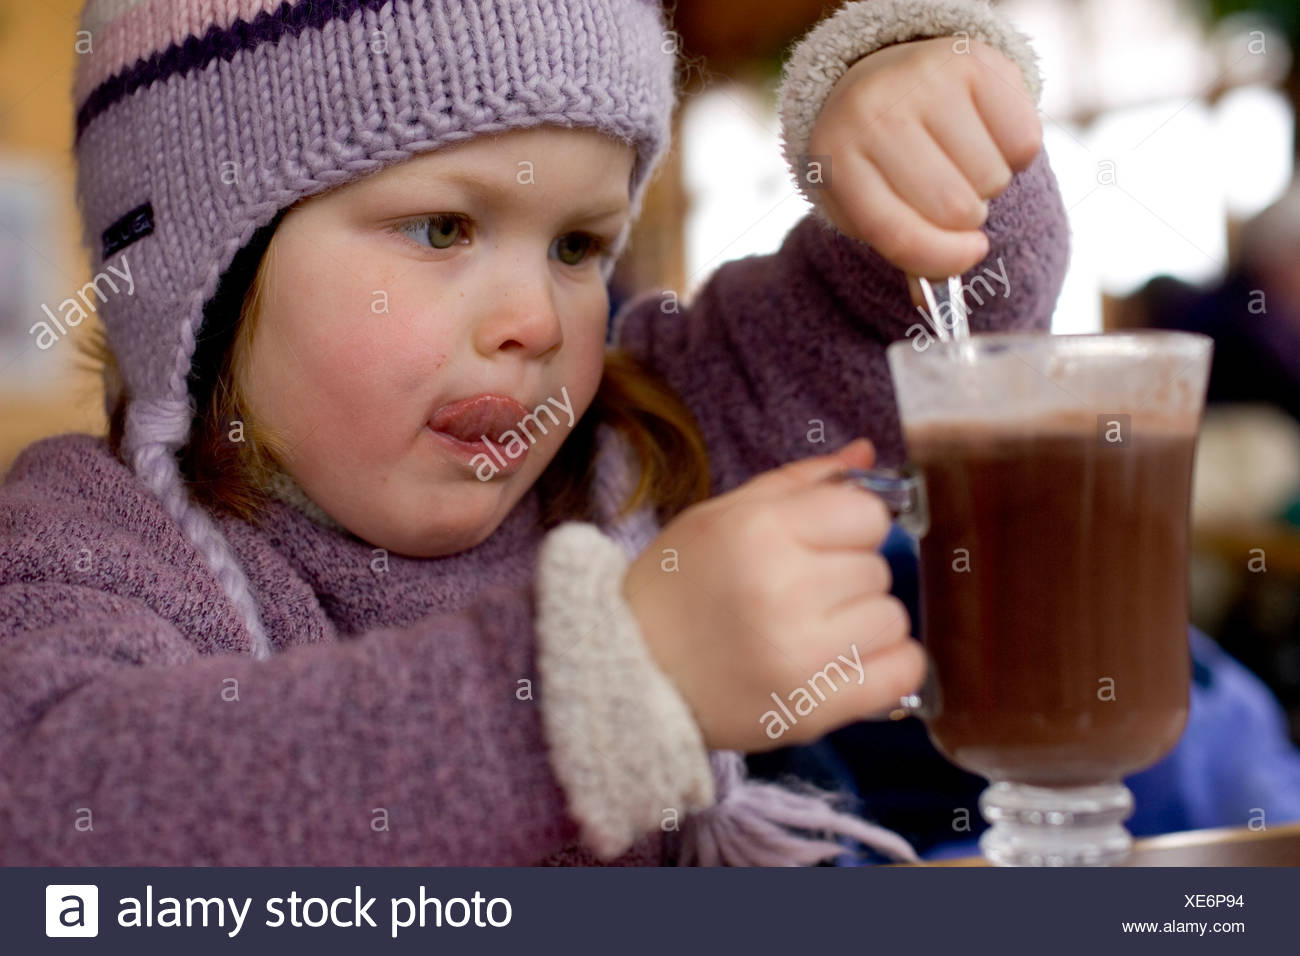 A young girl drinks hot chocolate during a break from skiing at Sunday River in Bethel, Maine. - Stock Image